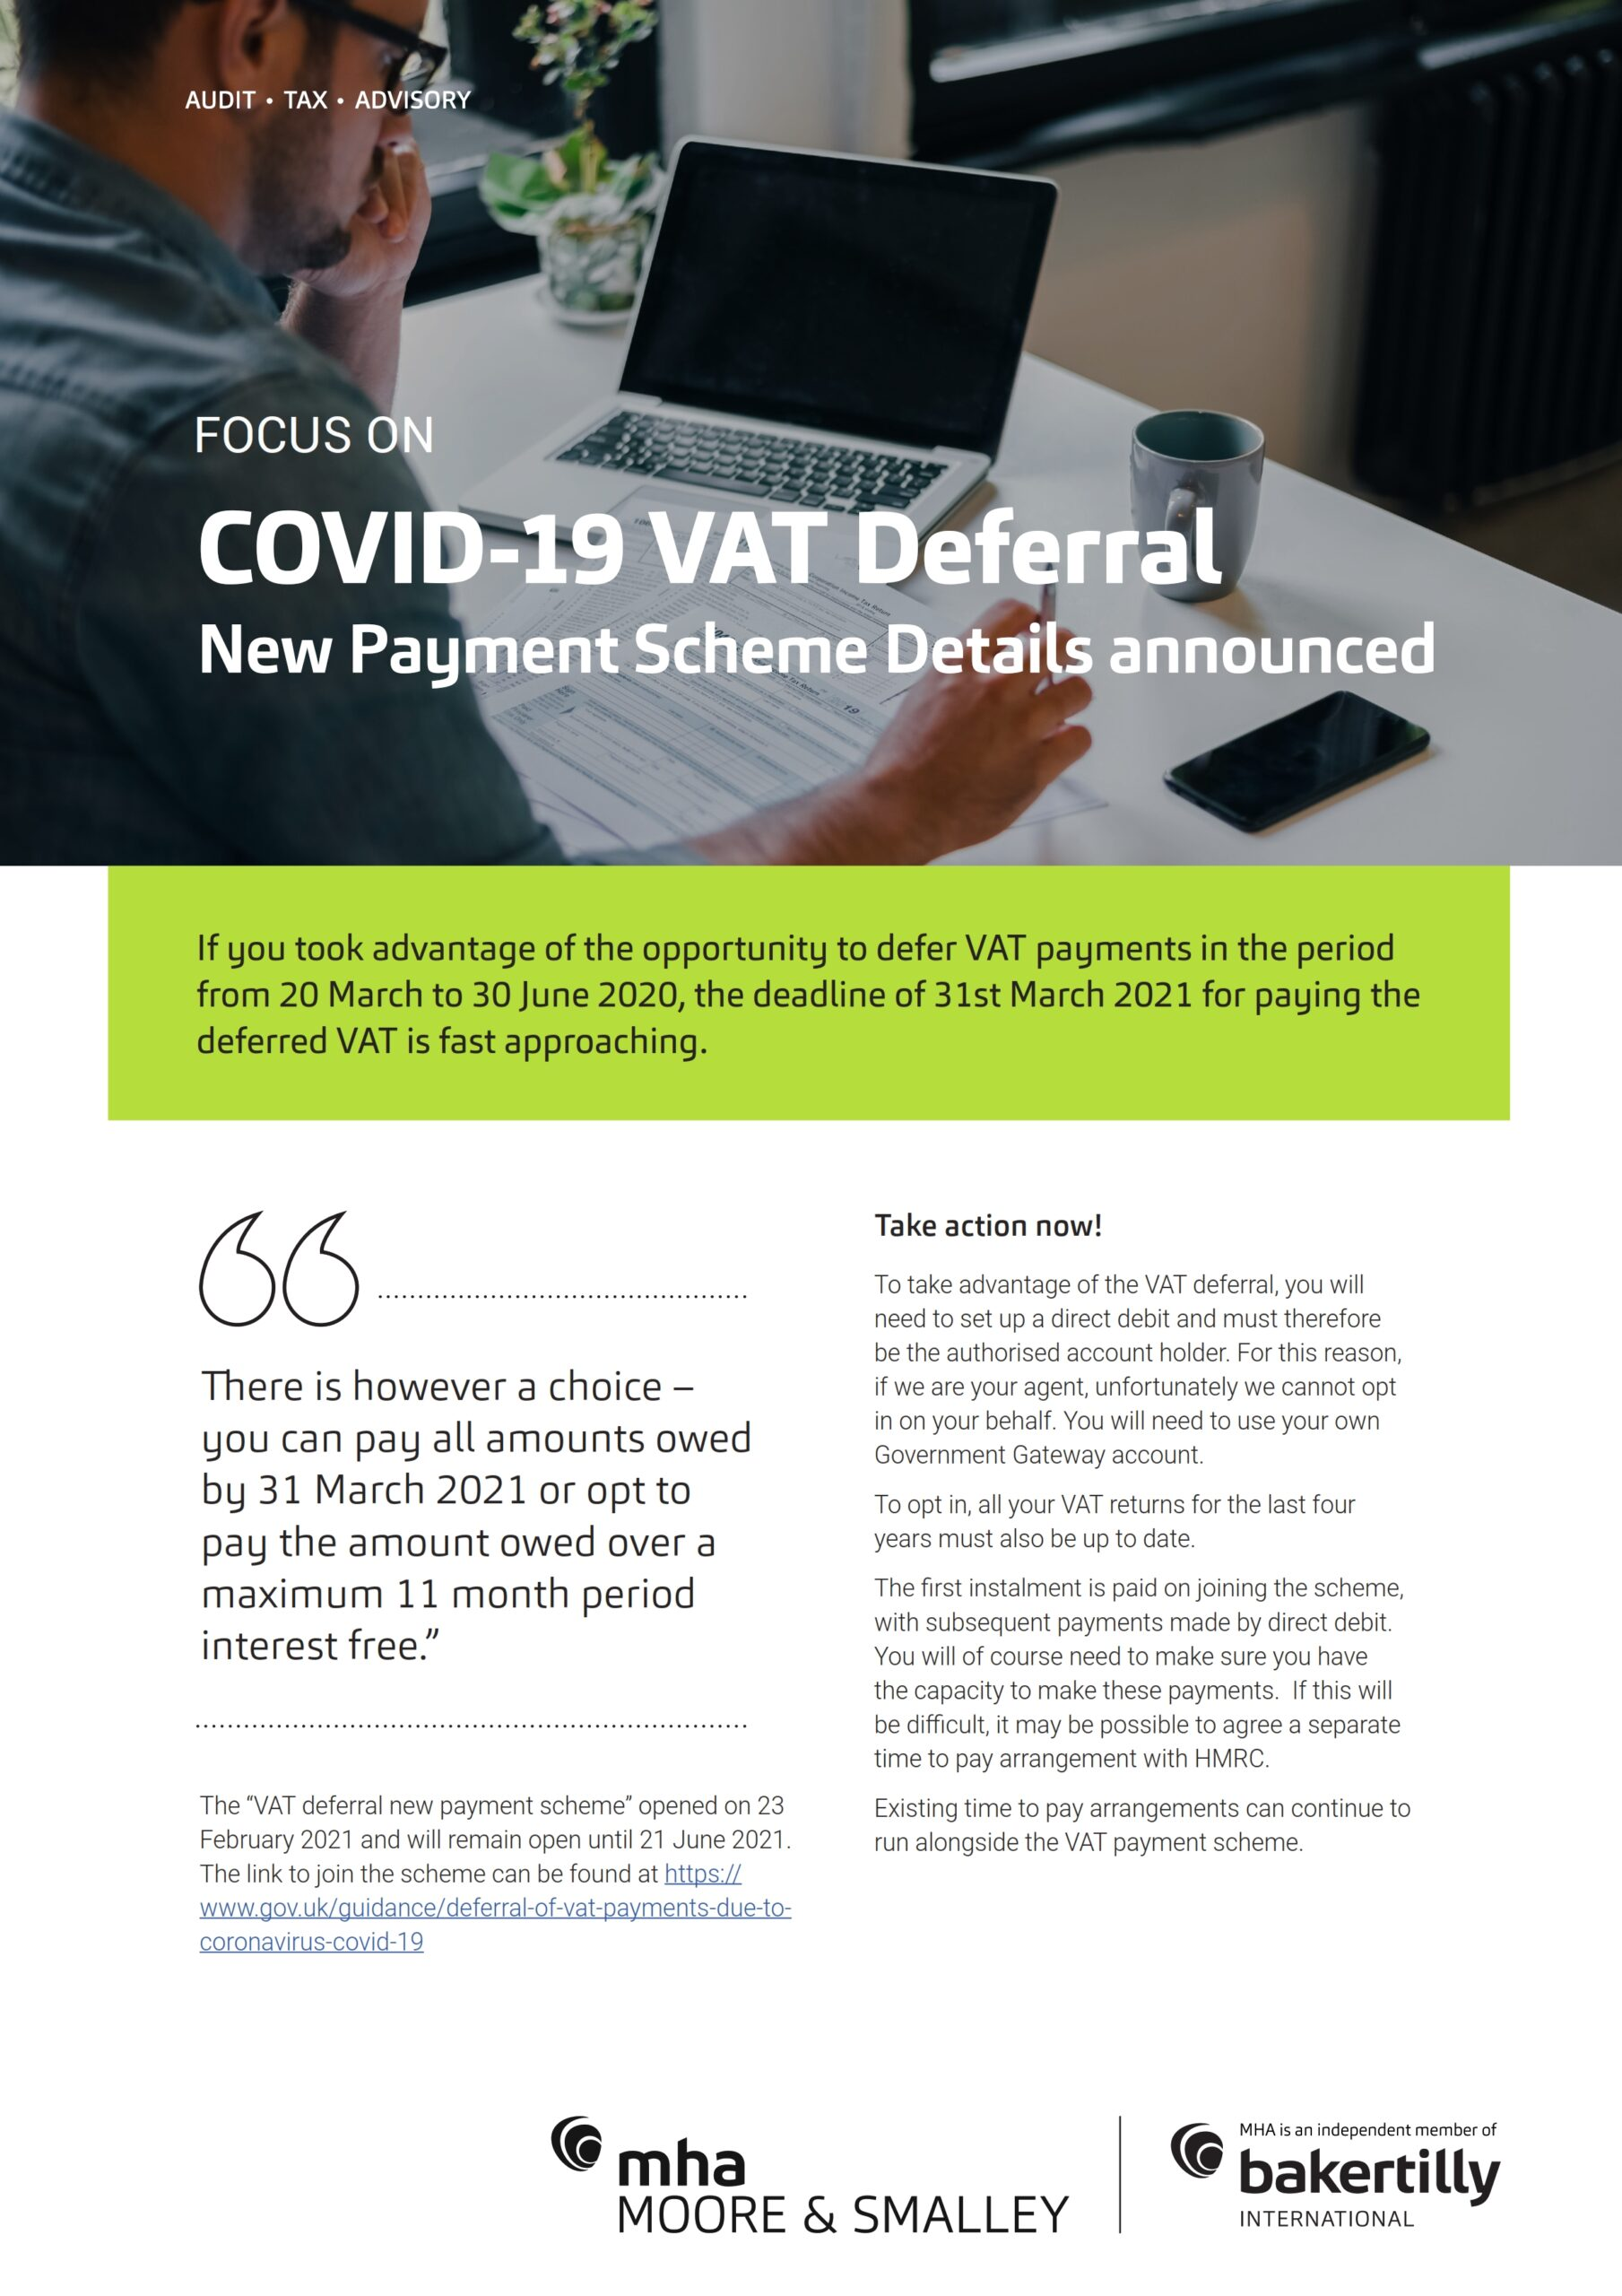 Focus On – Covid-19 VAT Deferral